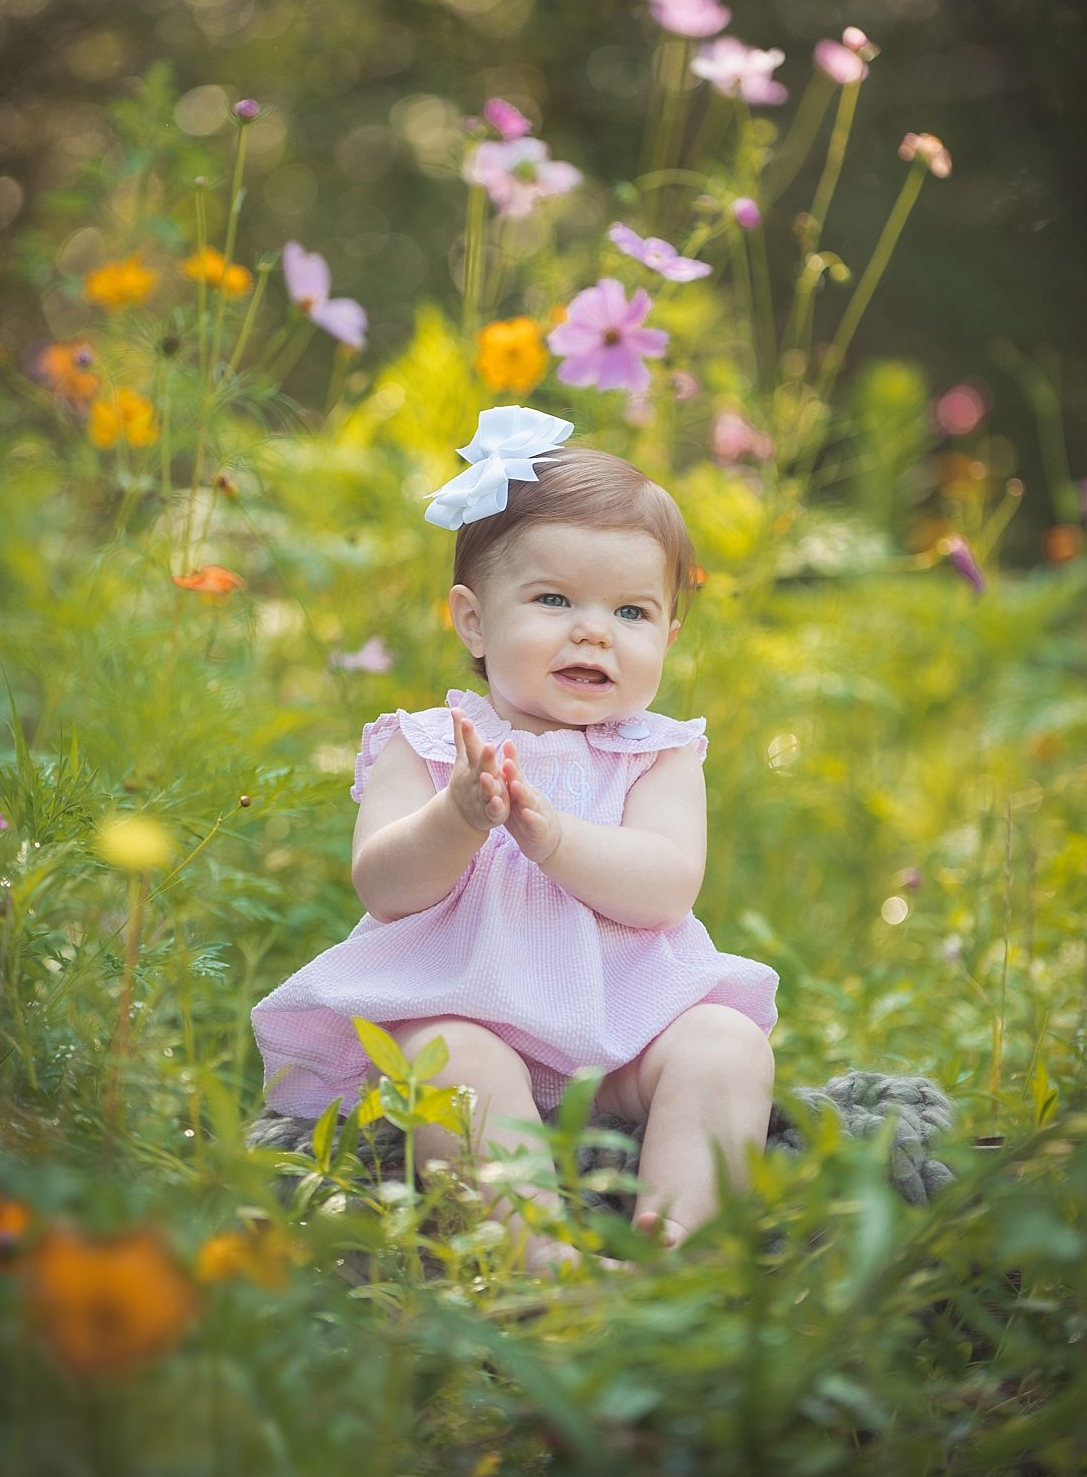 Andalusia Alabama baby and Child Photographer_0009.jpg